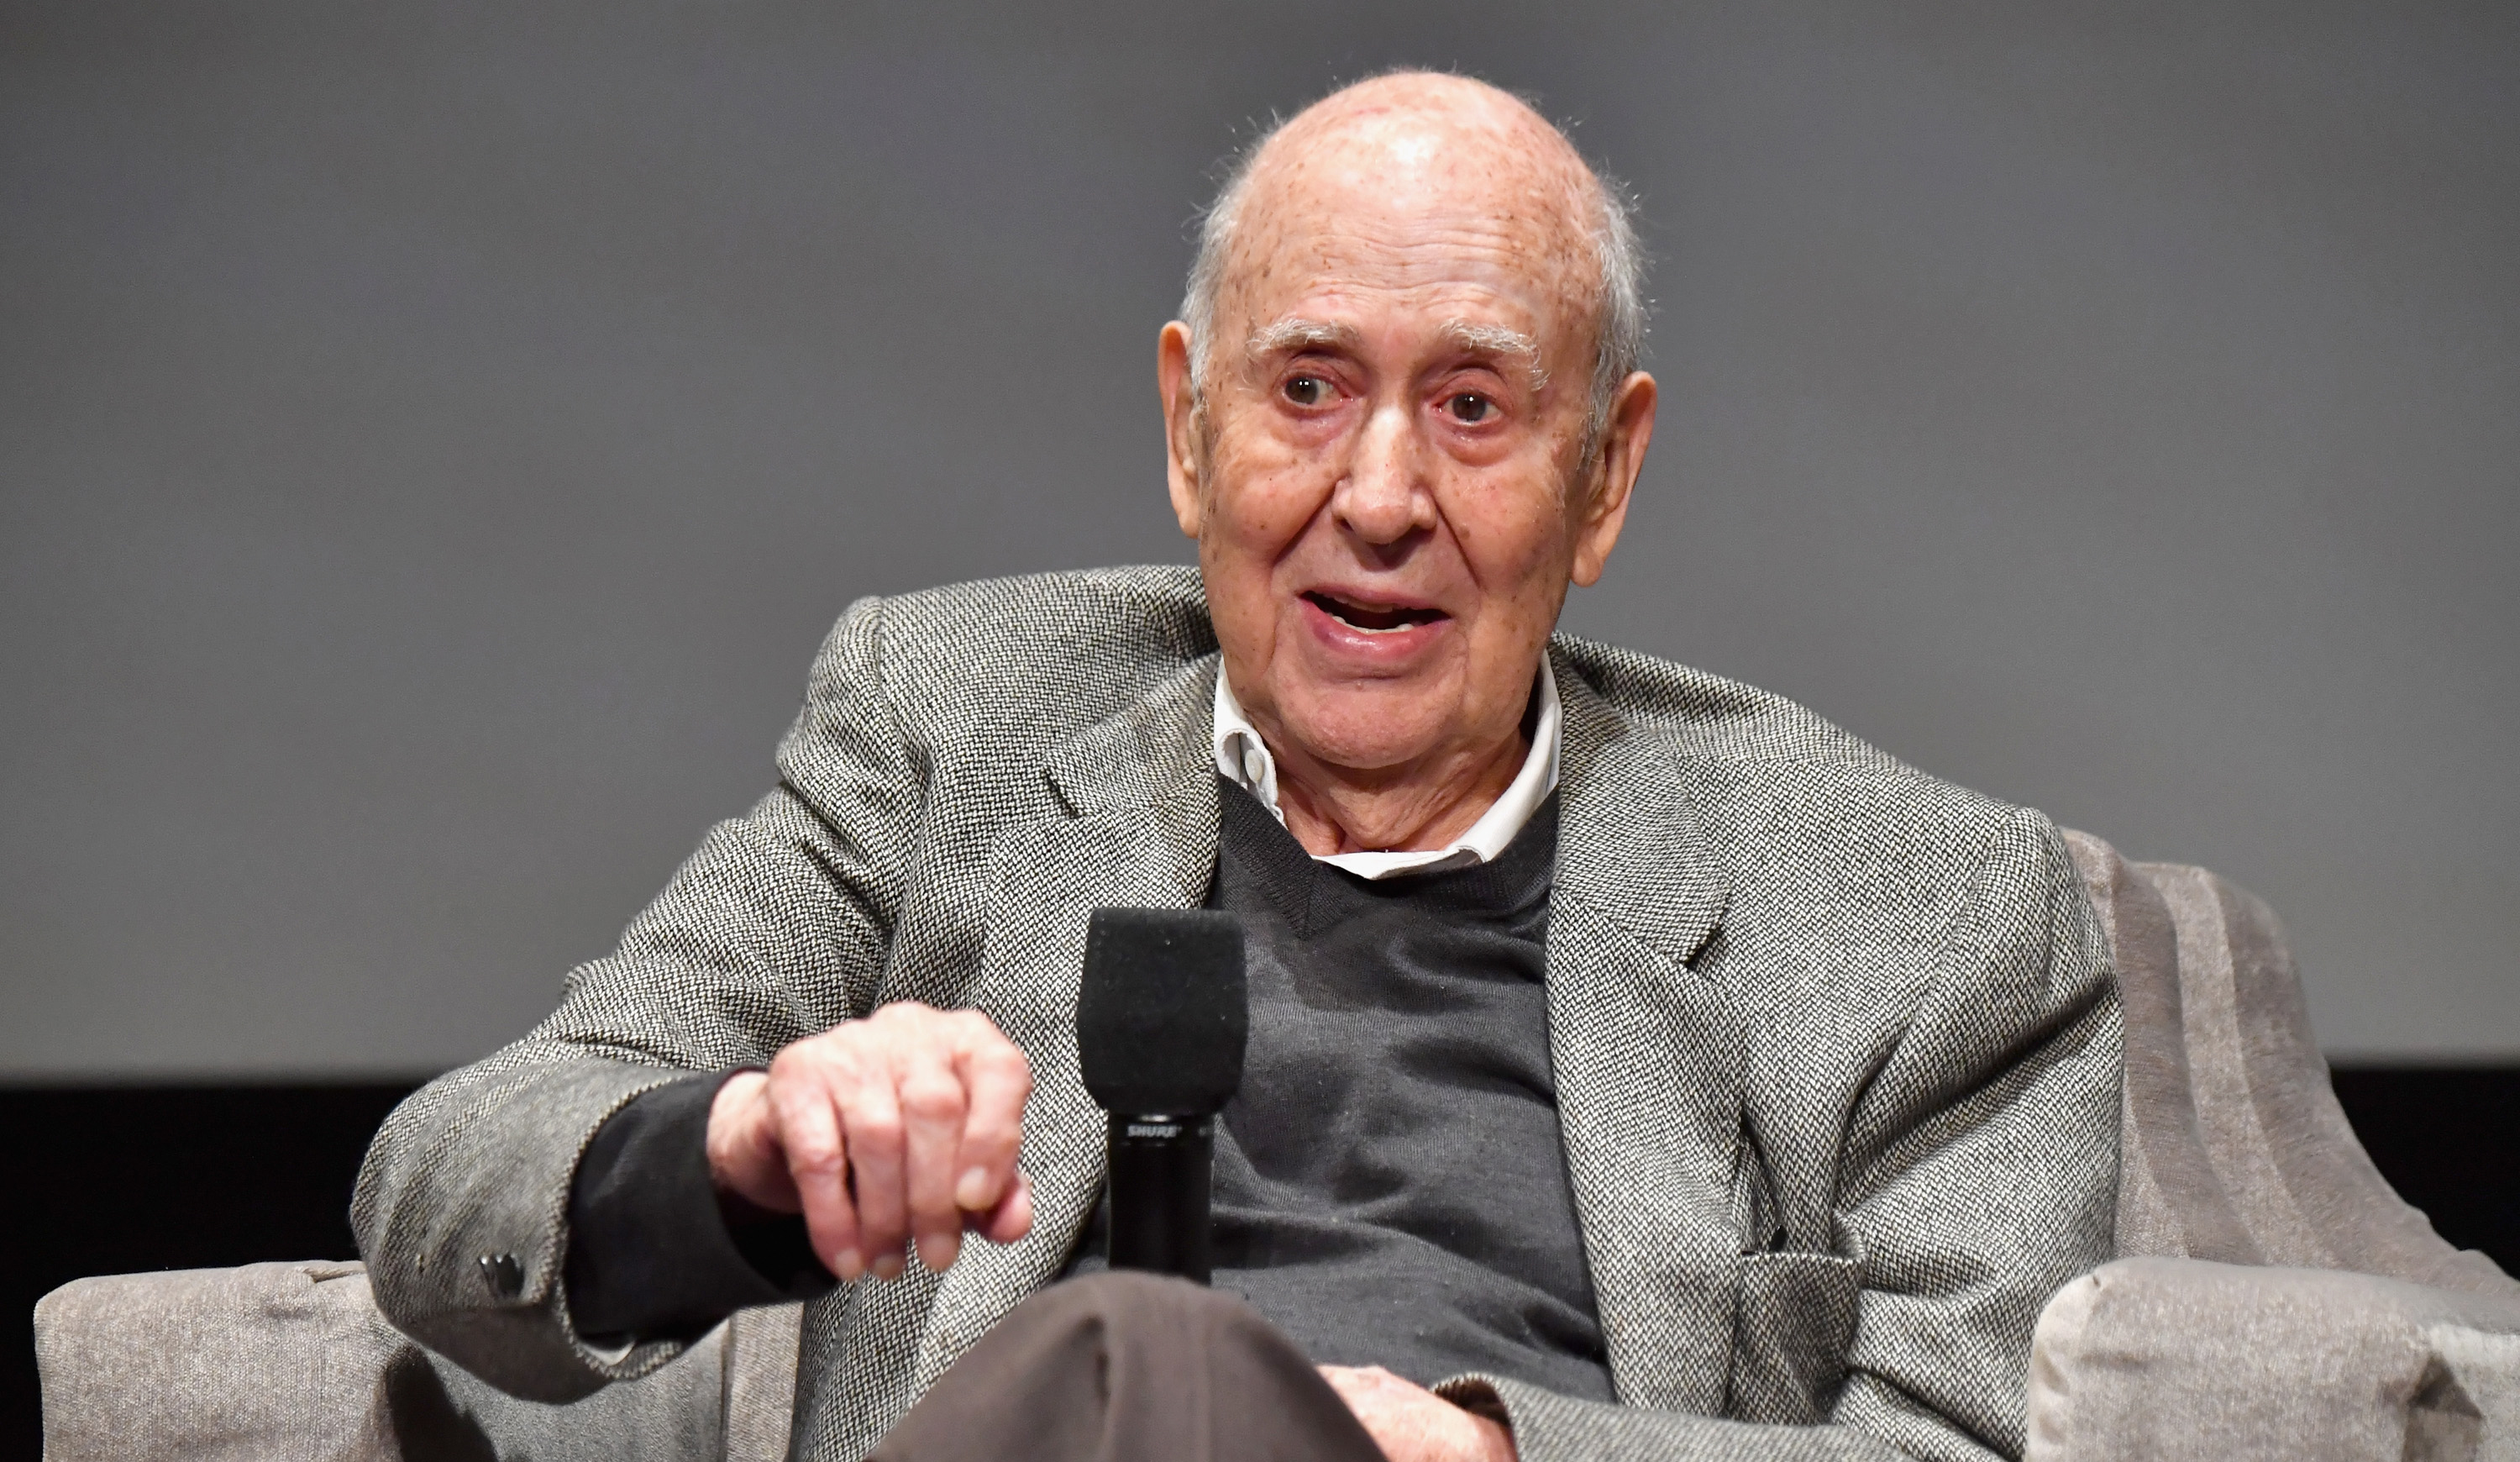 Comedian Carl Reiner Reveals What He's Learned at Age 97: 'Be Who You Are' (Exclusive)